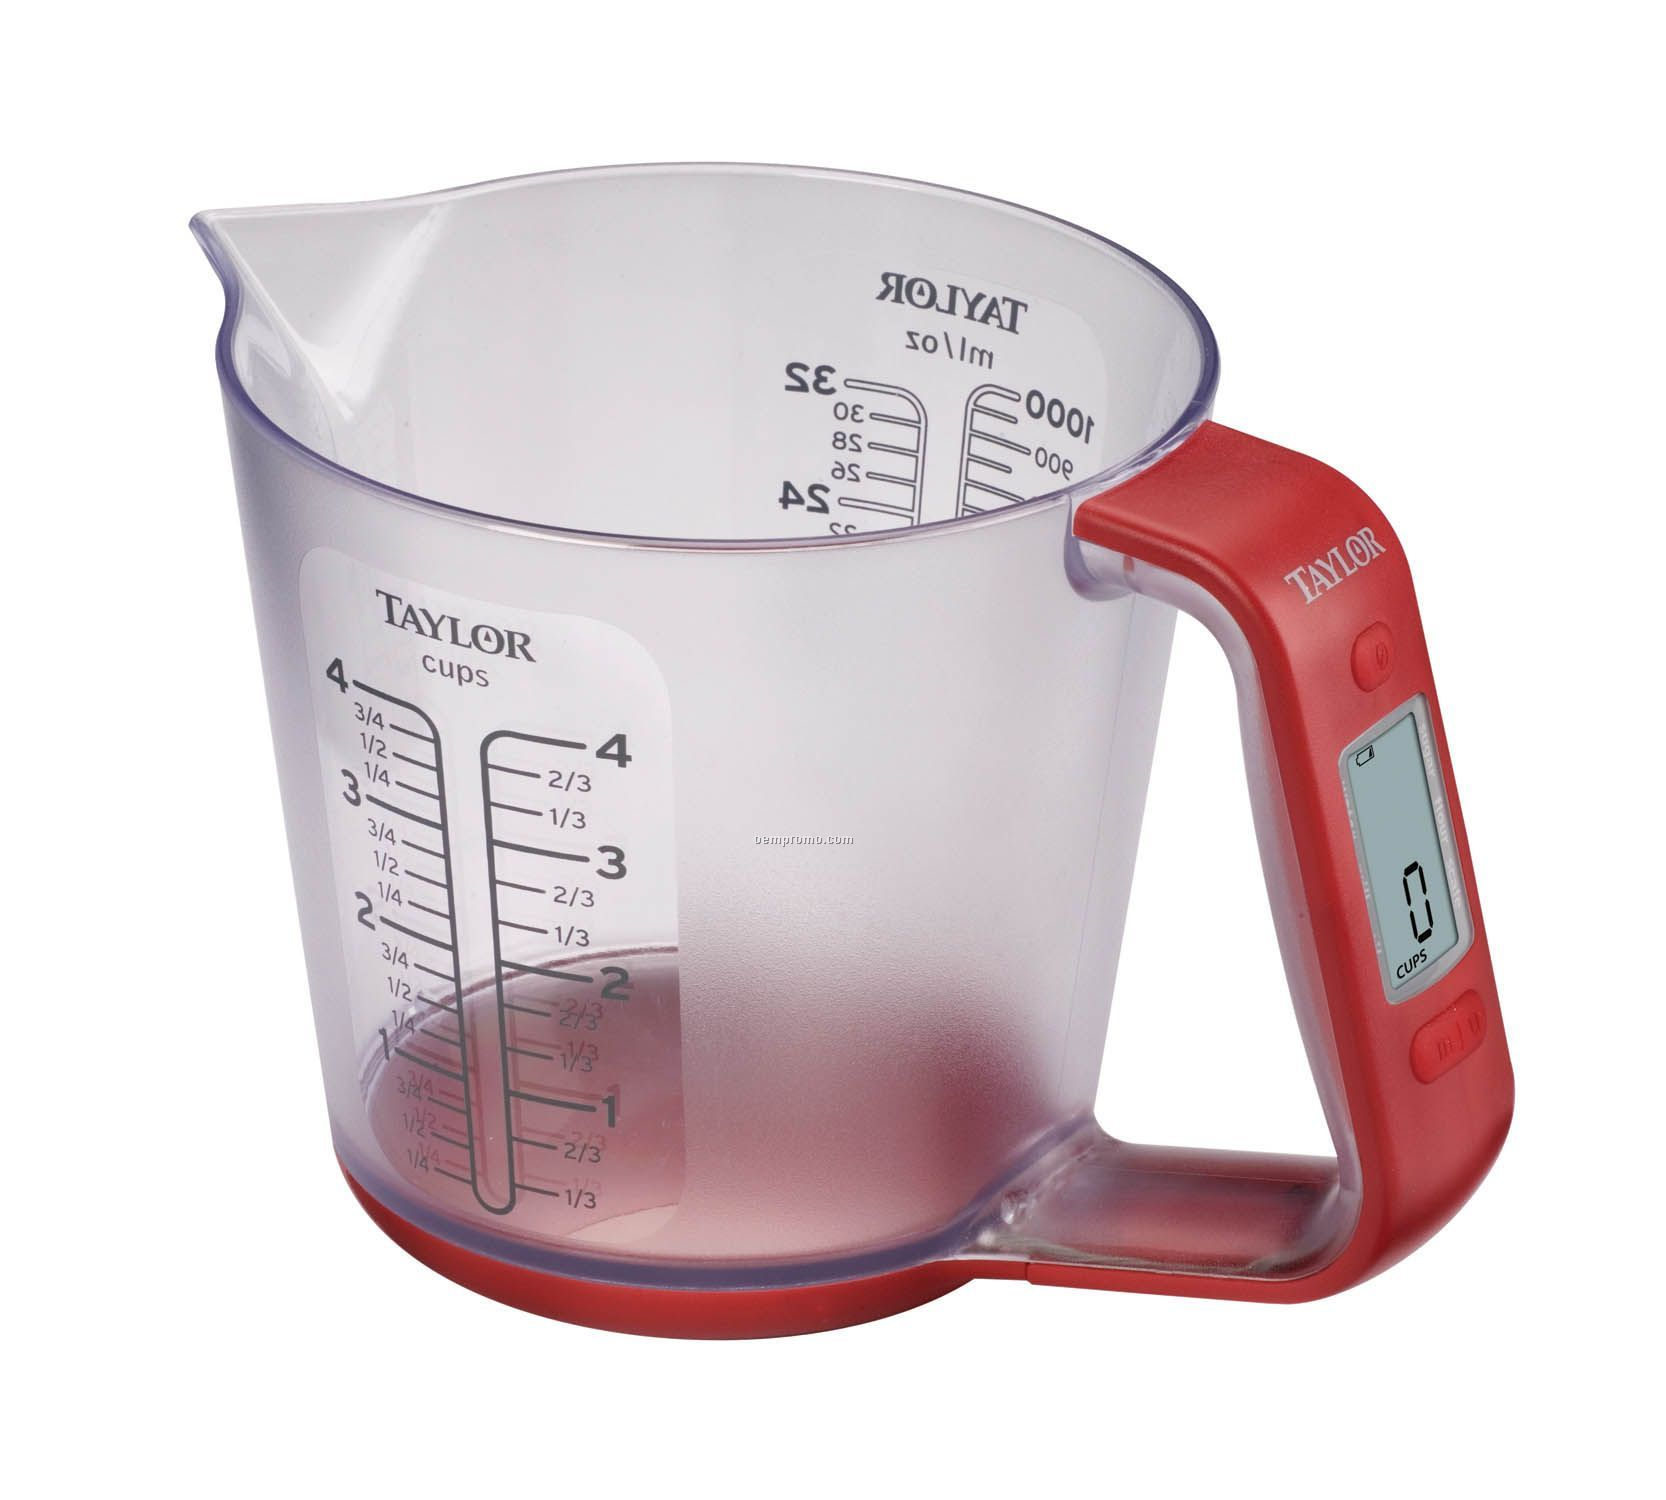 Ml Device Measuring Cups At Walmart : Measuring devices china wholesale page